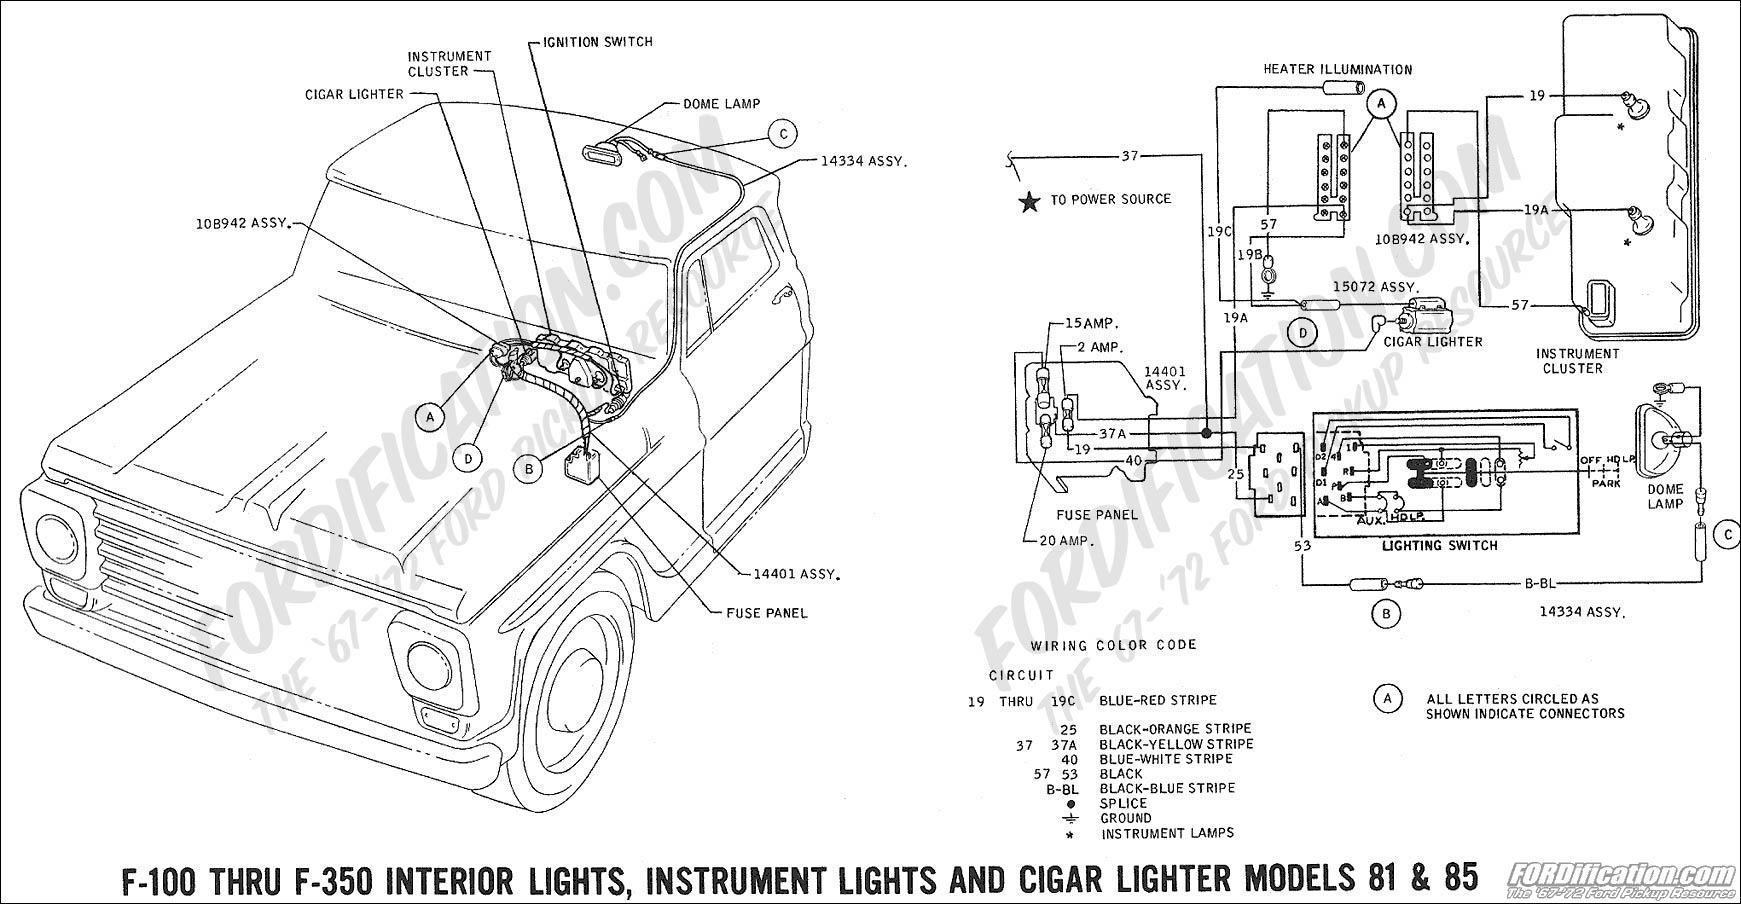 gm dome lamp wiring diagram